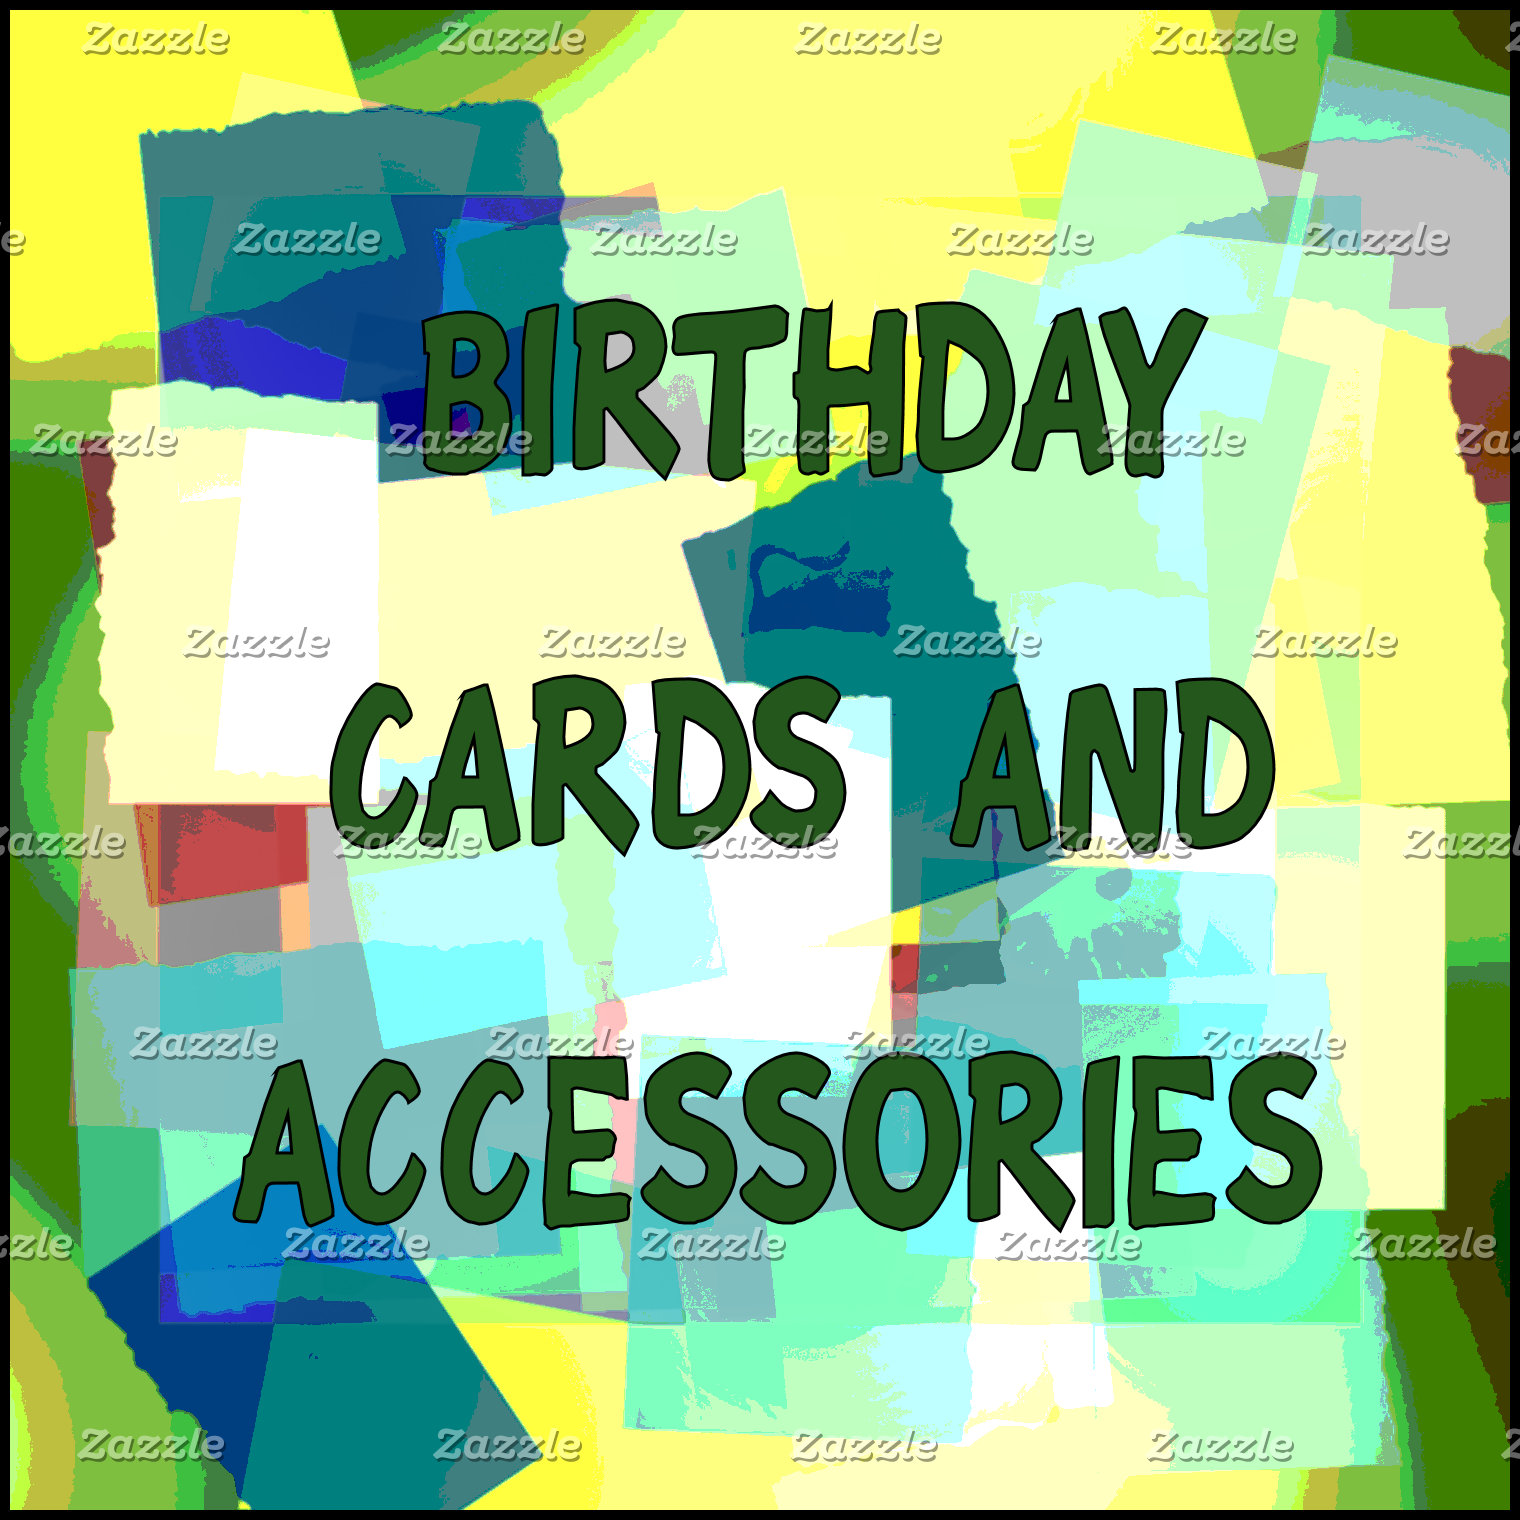 BIRTHDAY CARDS AND ACCESSORIES